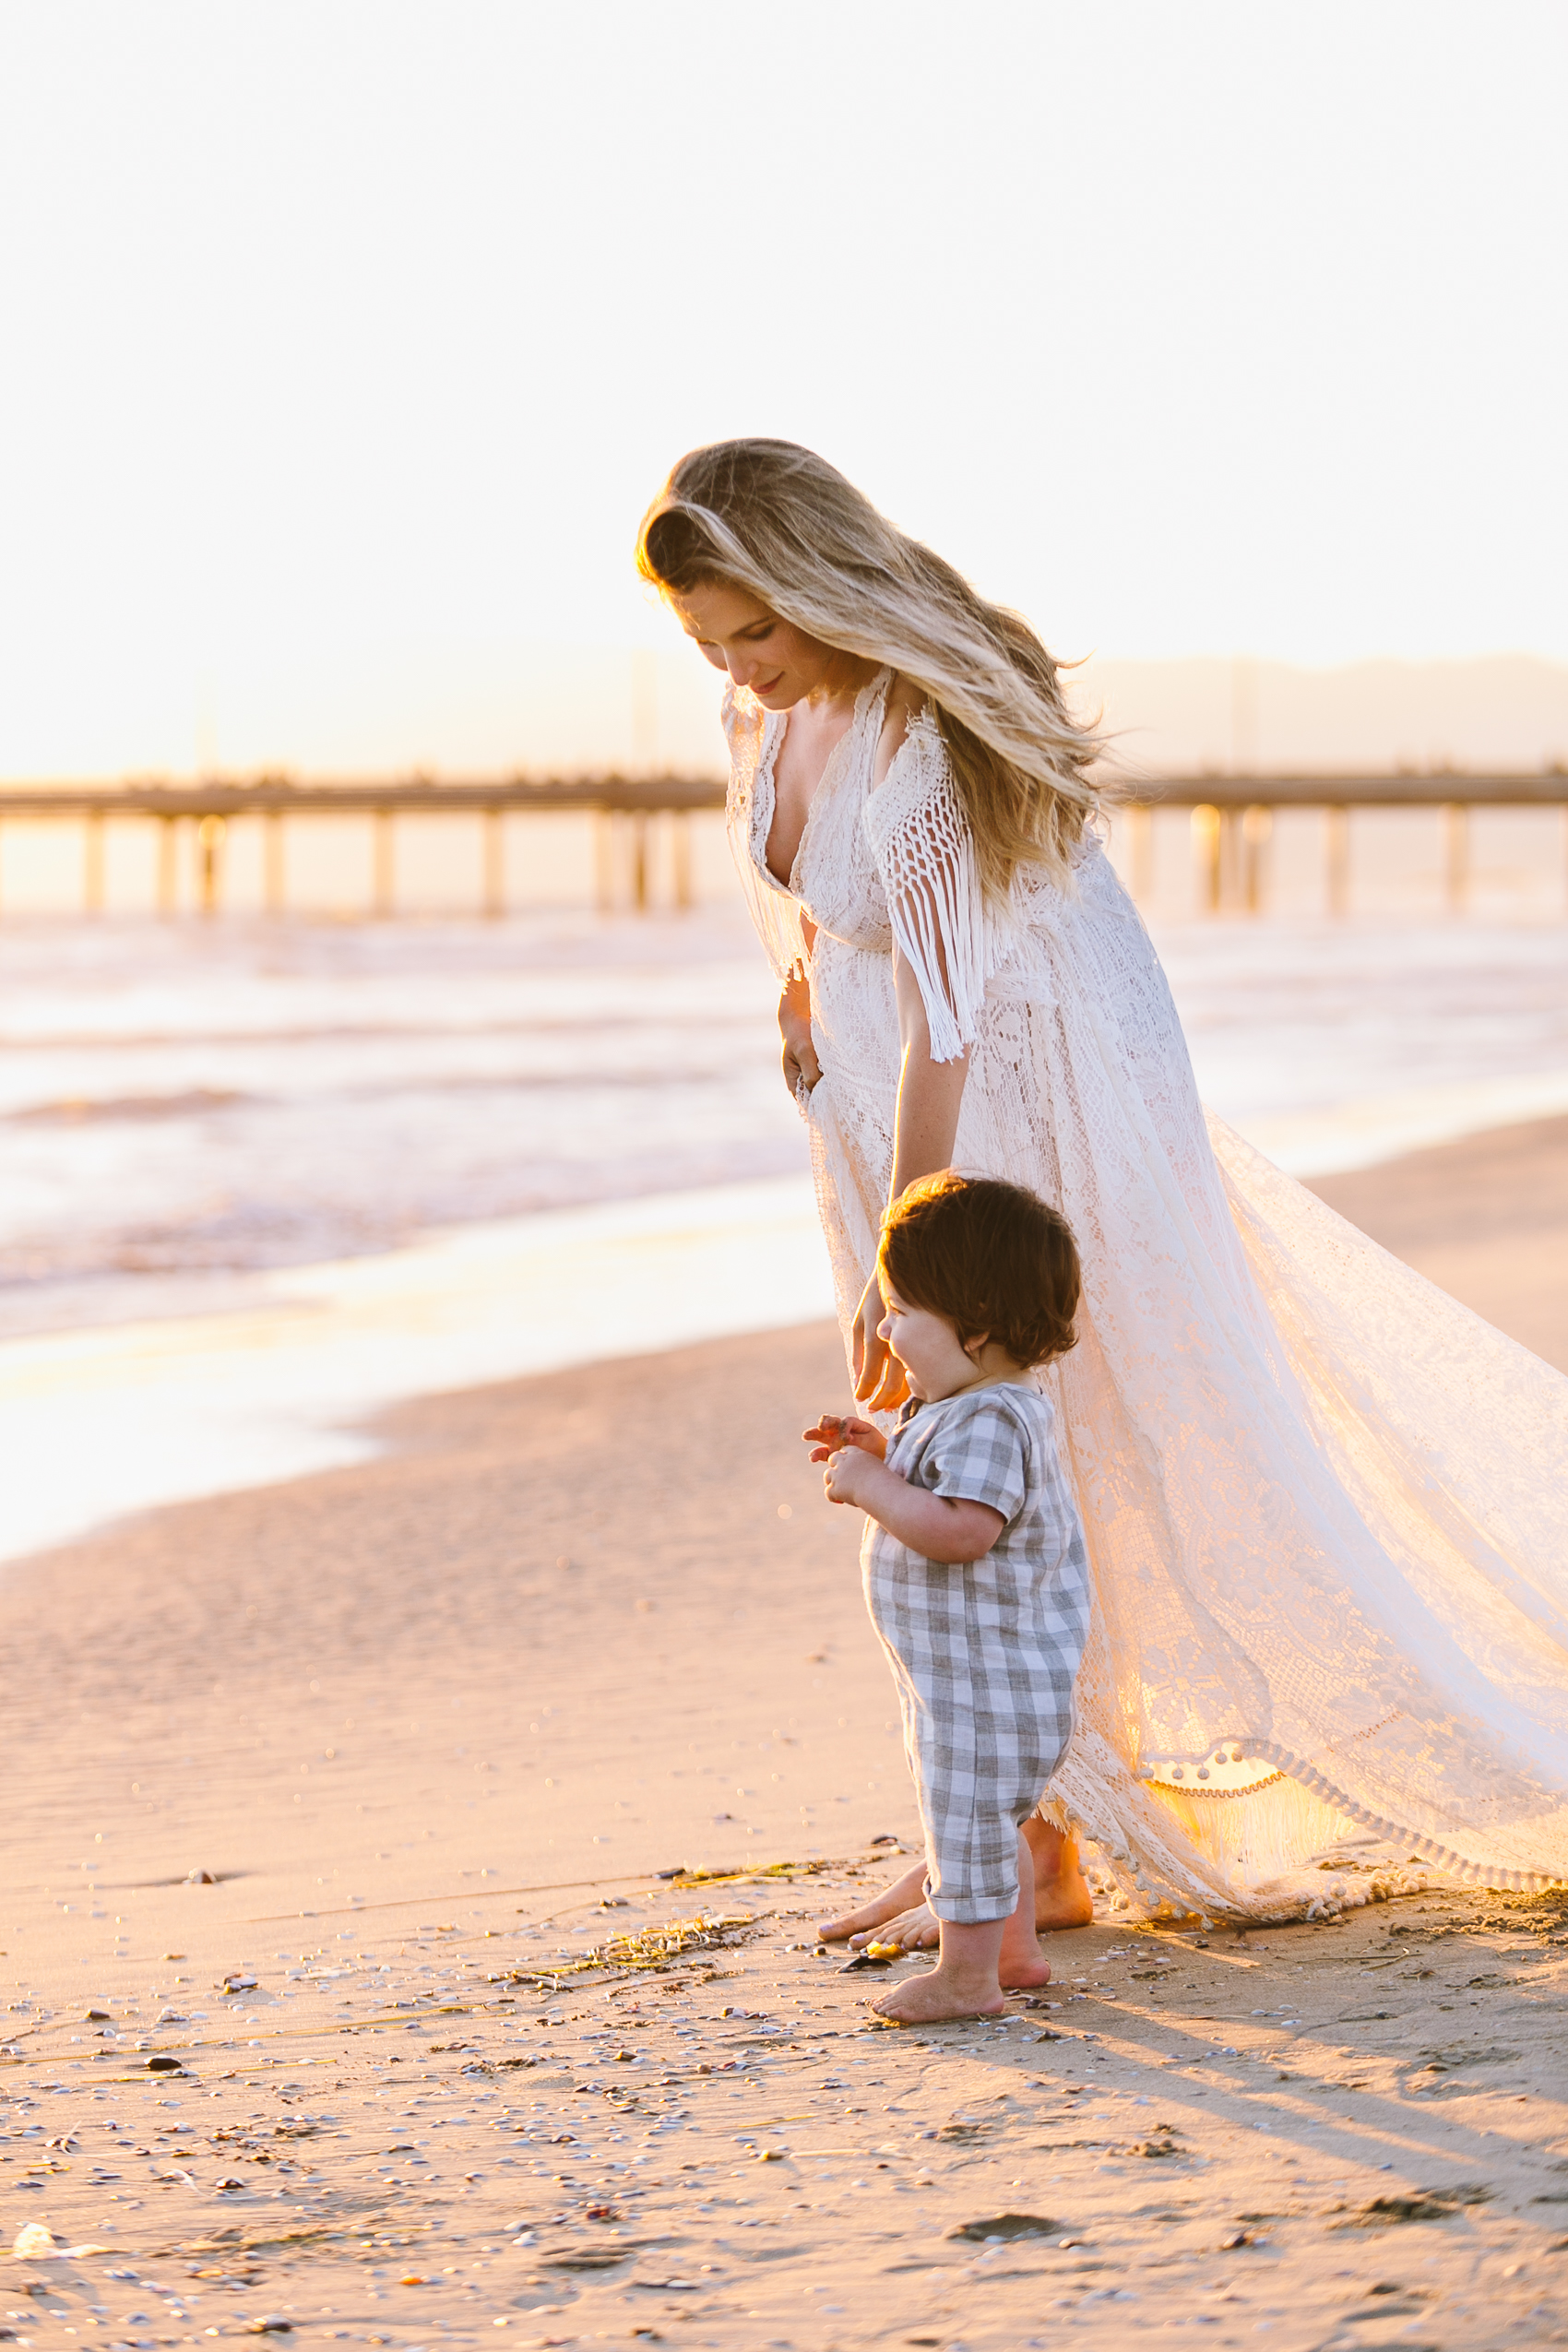 Los_Angeles_Family_Photographer_Maternity_Photos_Baby_Pregnancy_Venice_Beach_Golden_Hour-1167.jpg